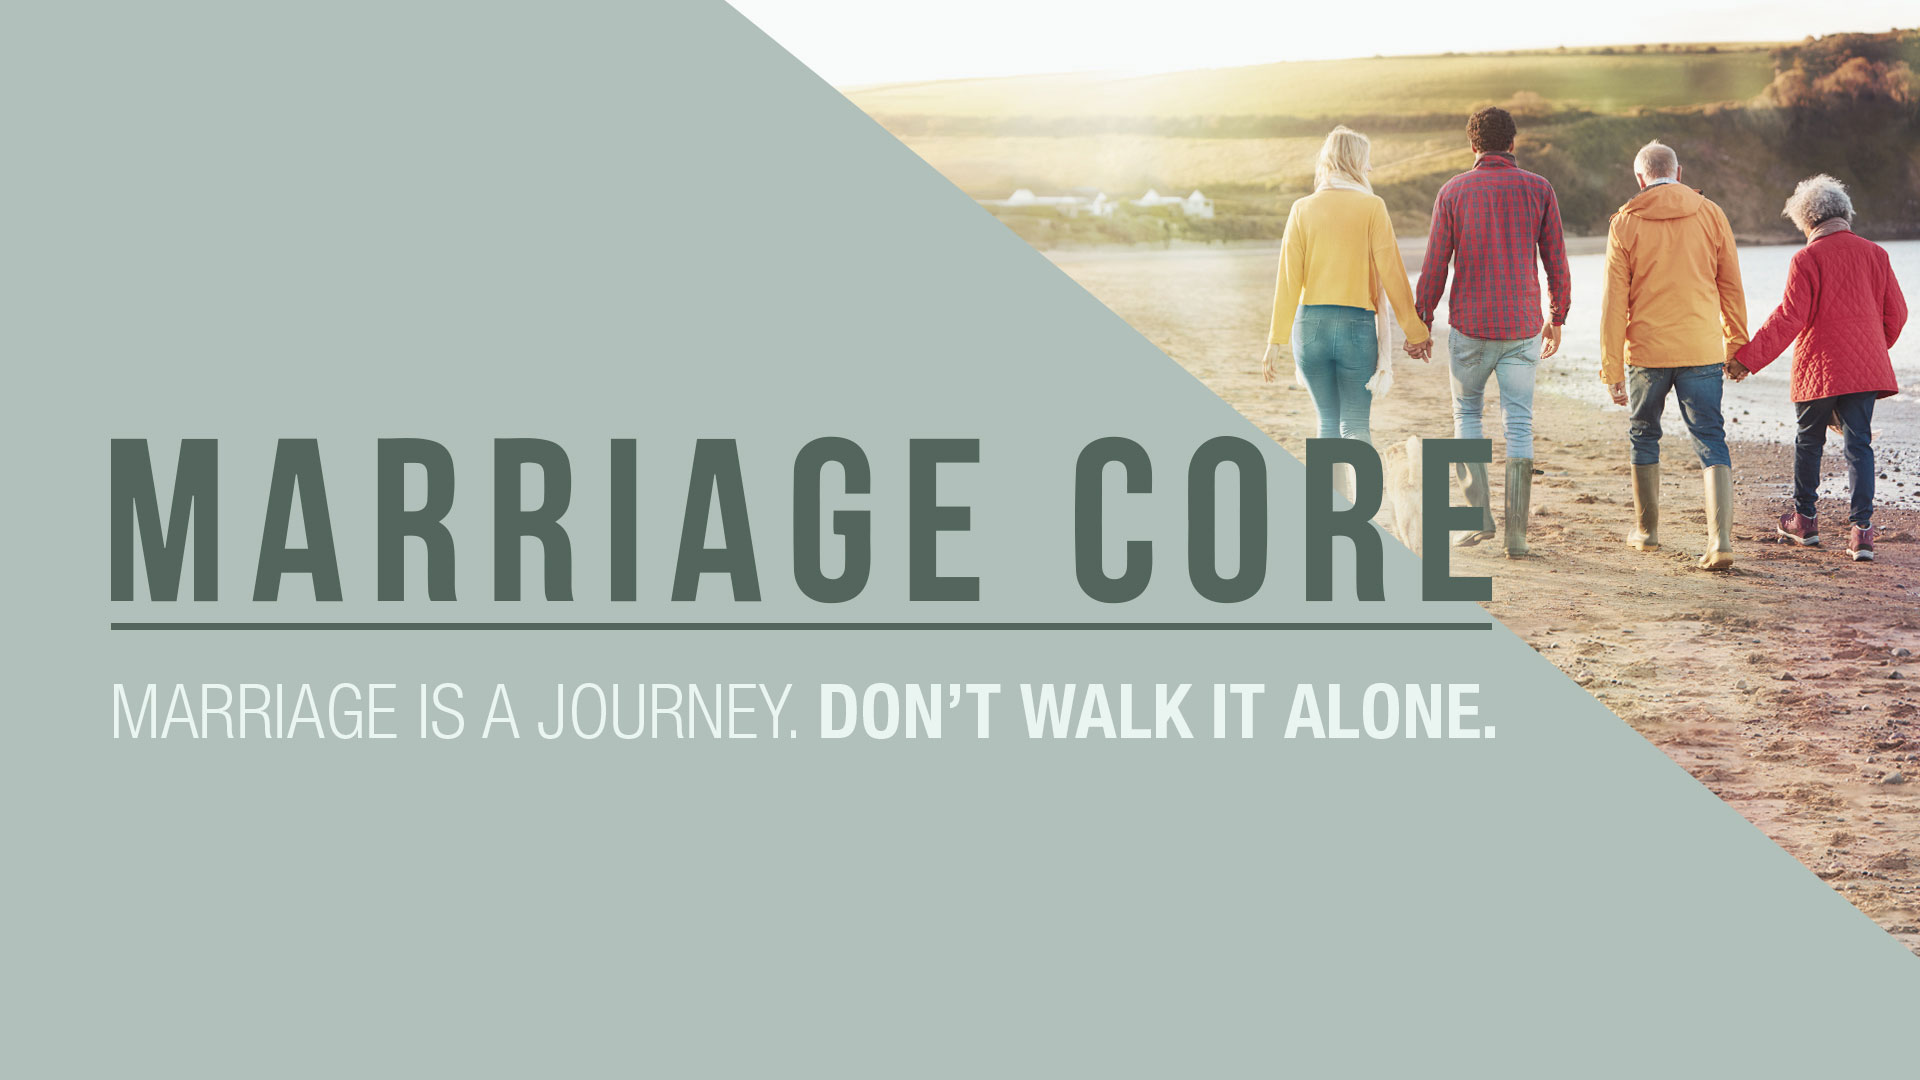 Marriage Core